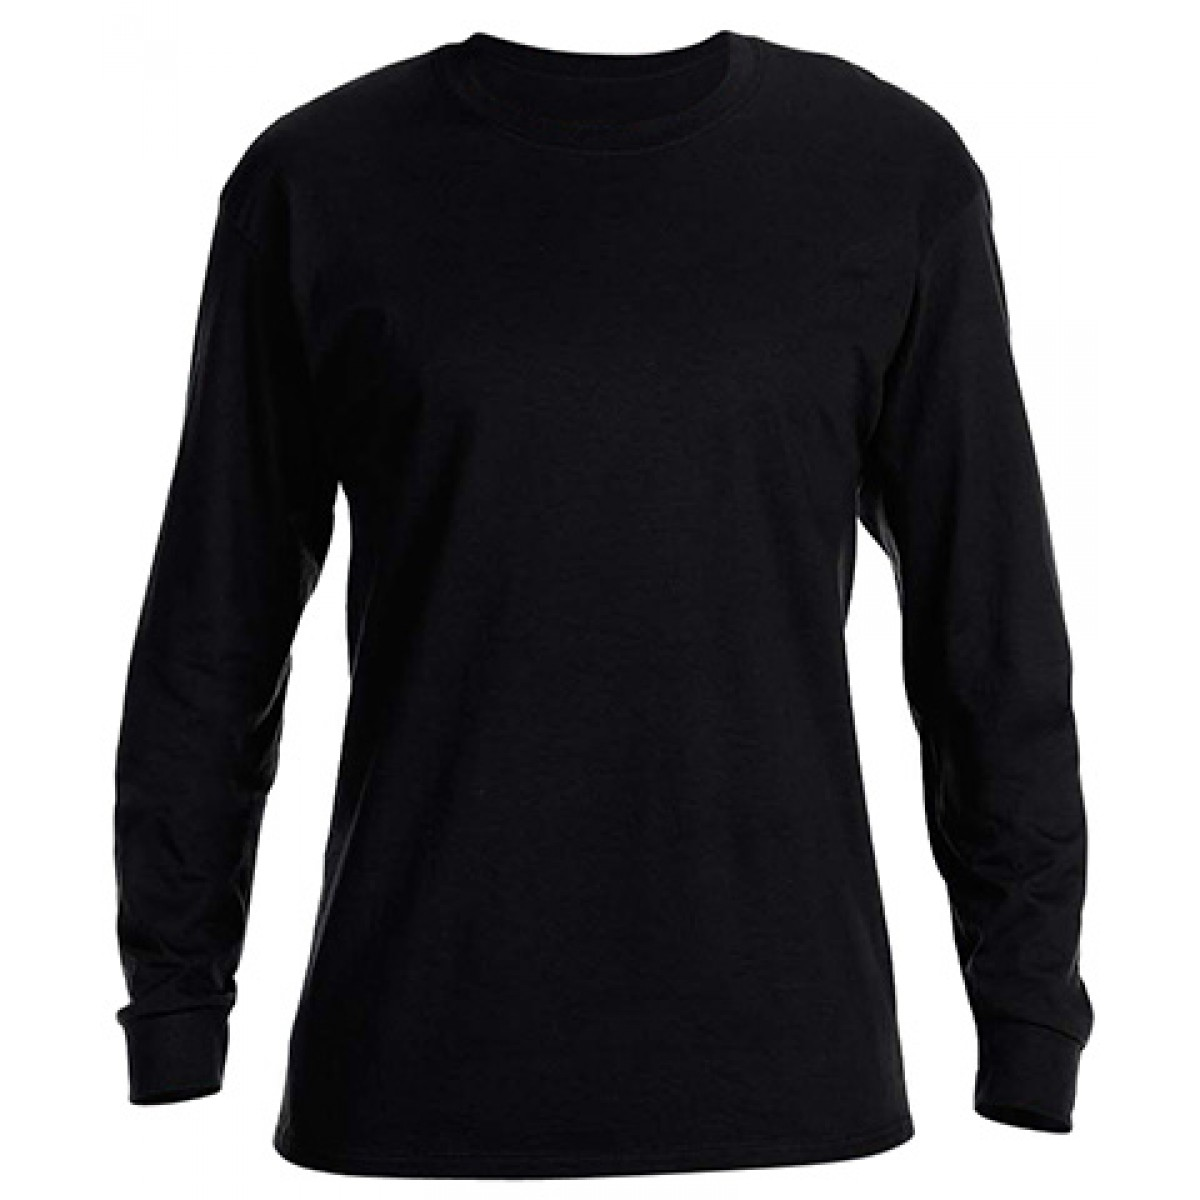 Basic Long Sleeve Crew Neck -Black-YM